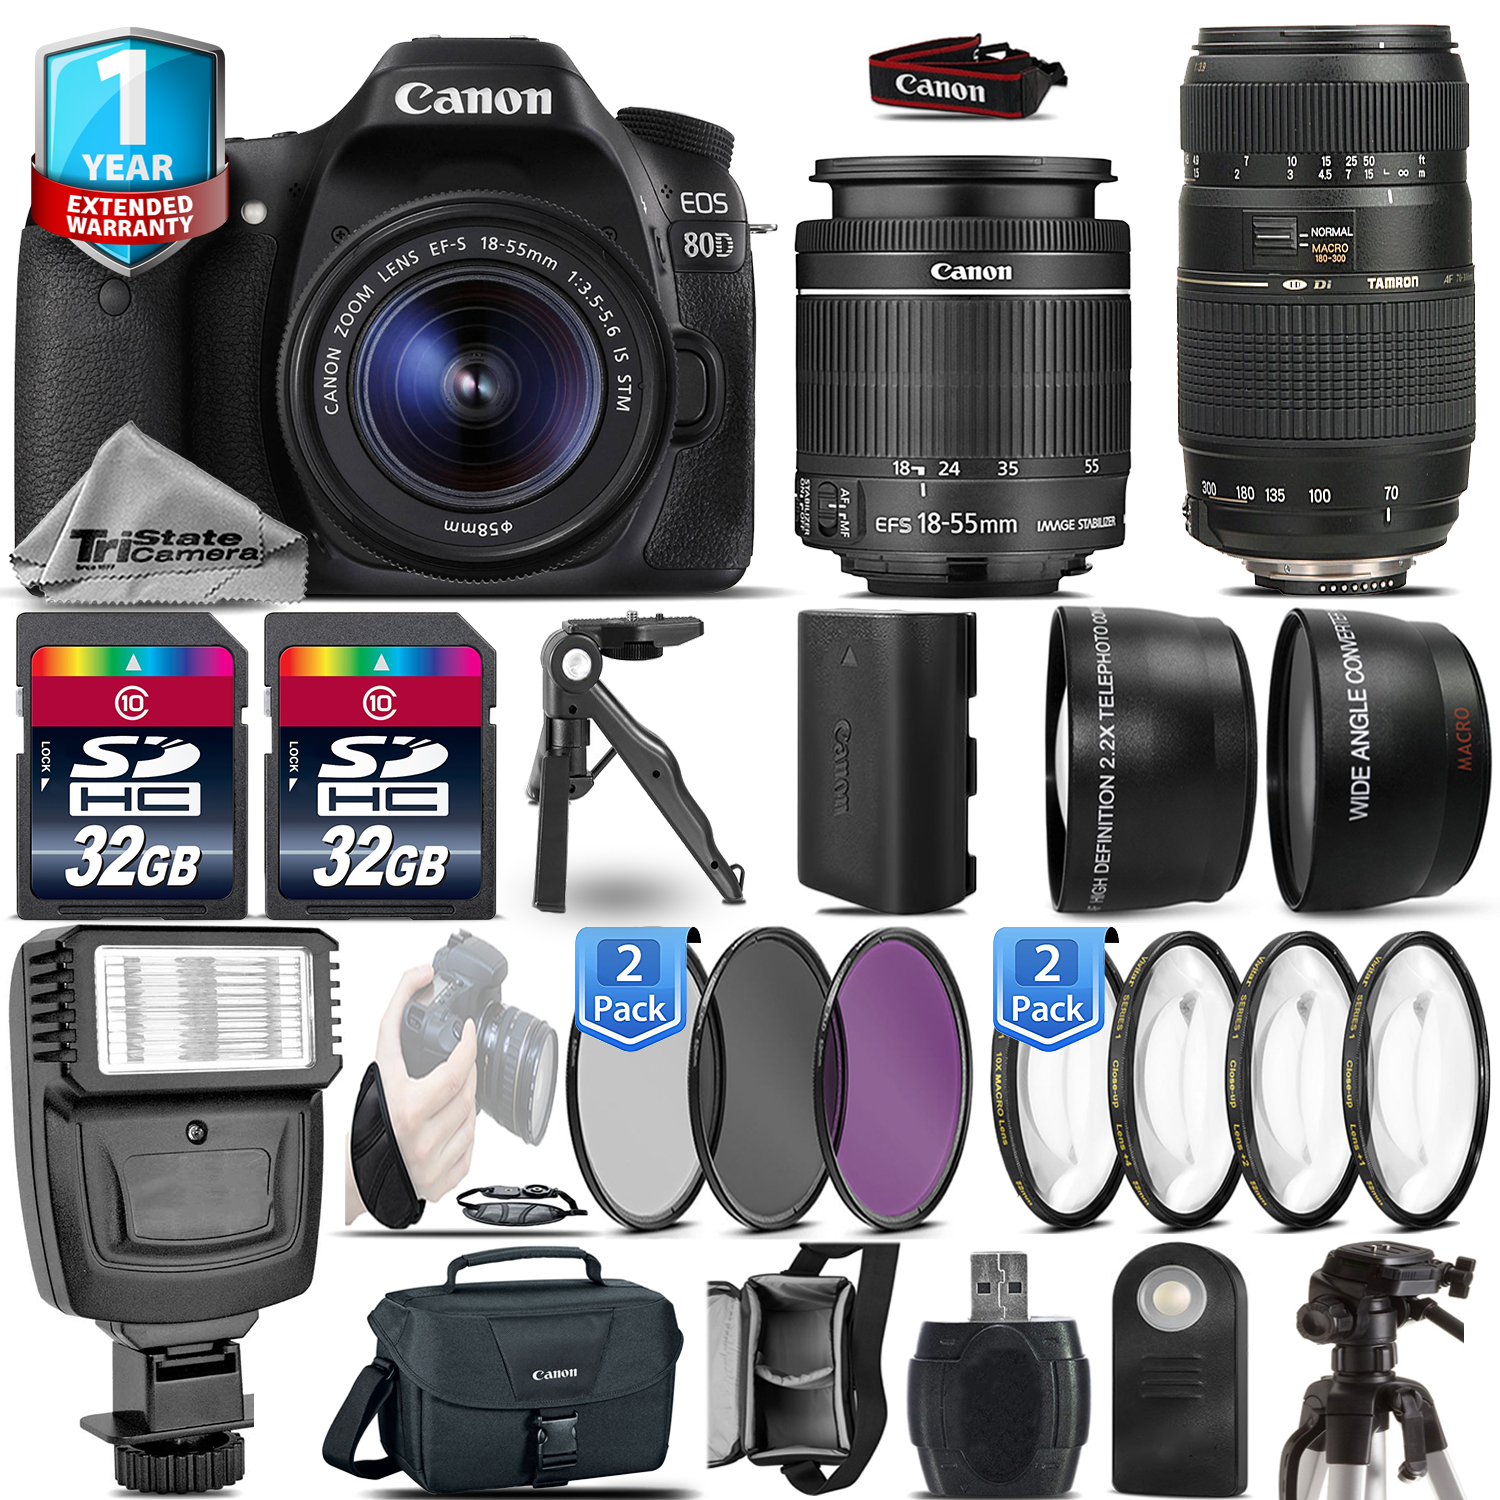 EOS 80D DSLR Camera + 18-55mm IS STM + 70-300mm + 1yr Warranty - 64GB Kit *FREE SHIPPING*